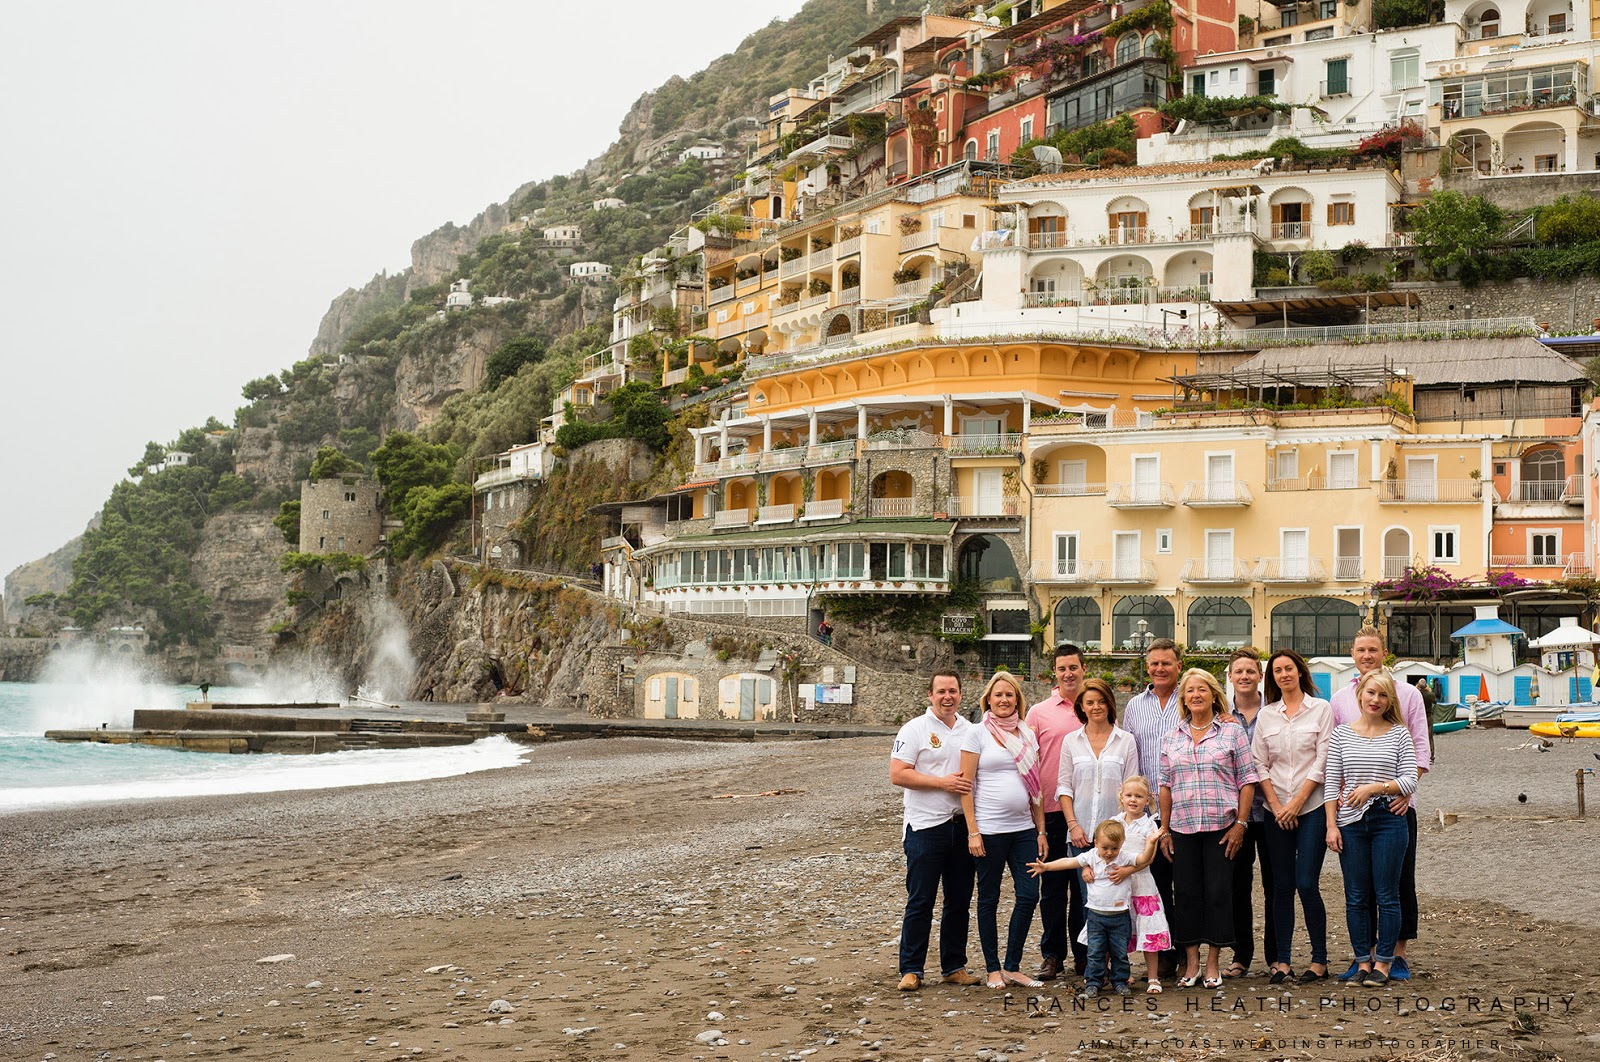 Family portrait in Positano